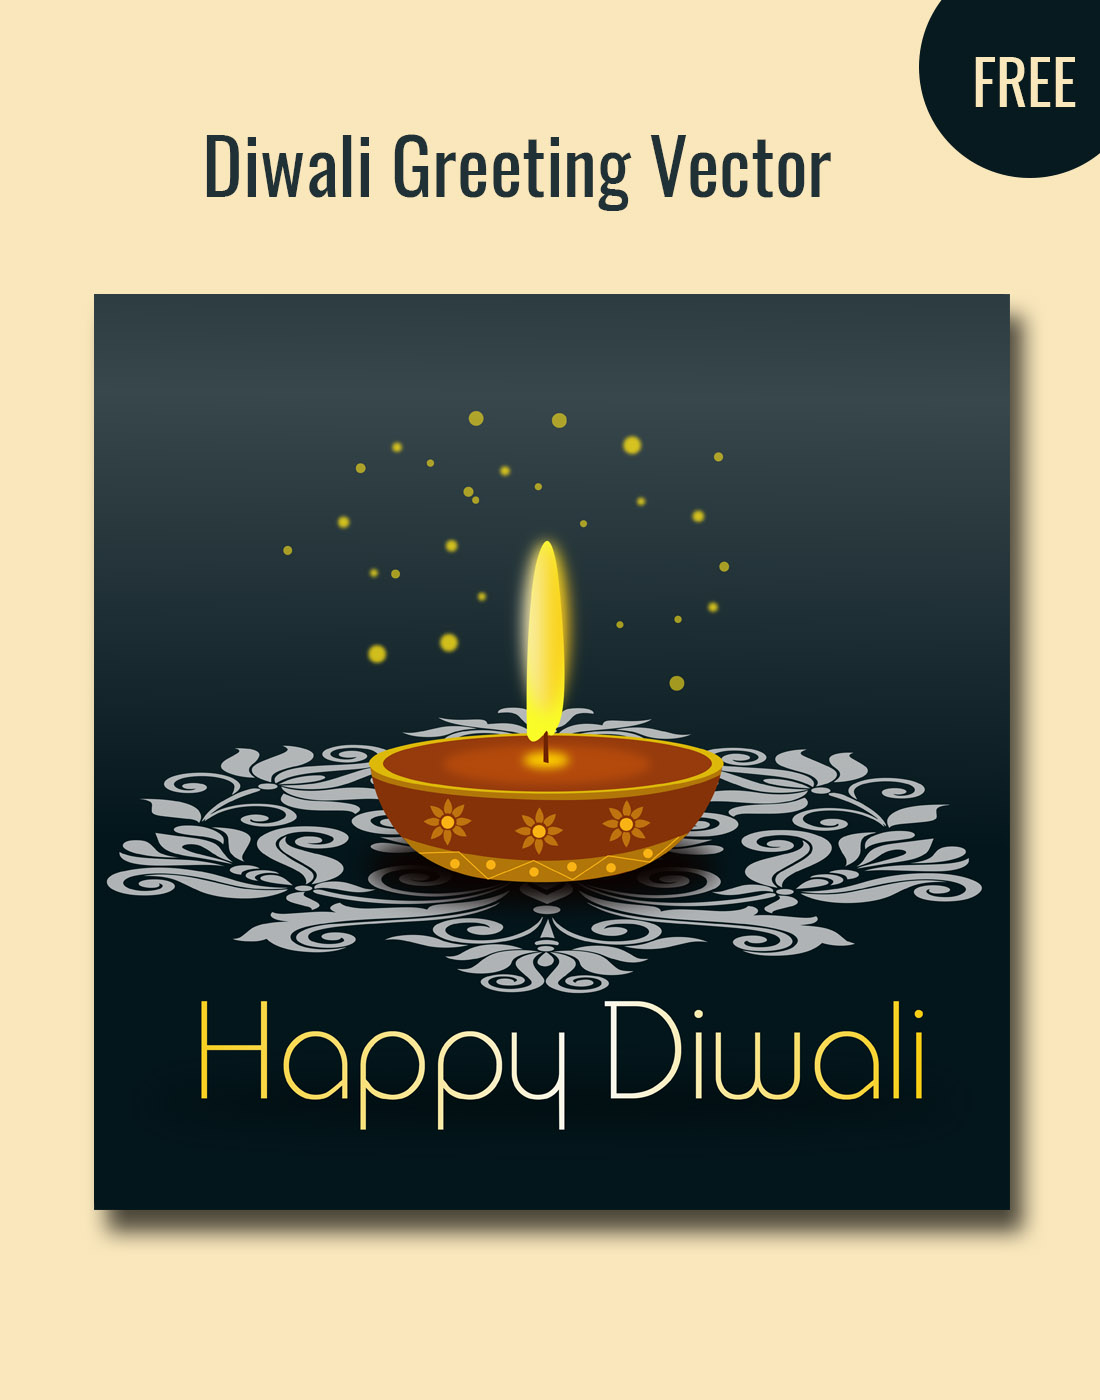 diwali greeting vector